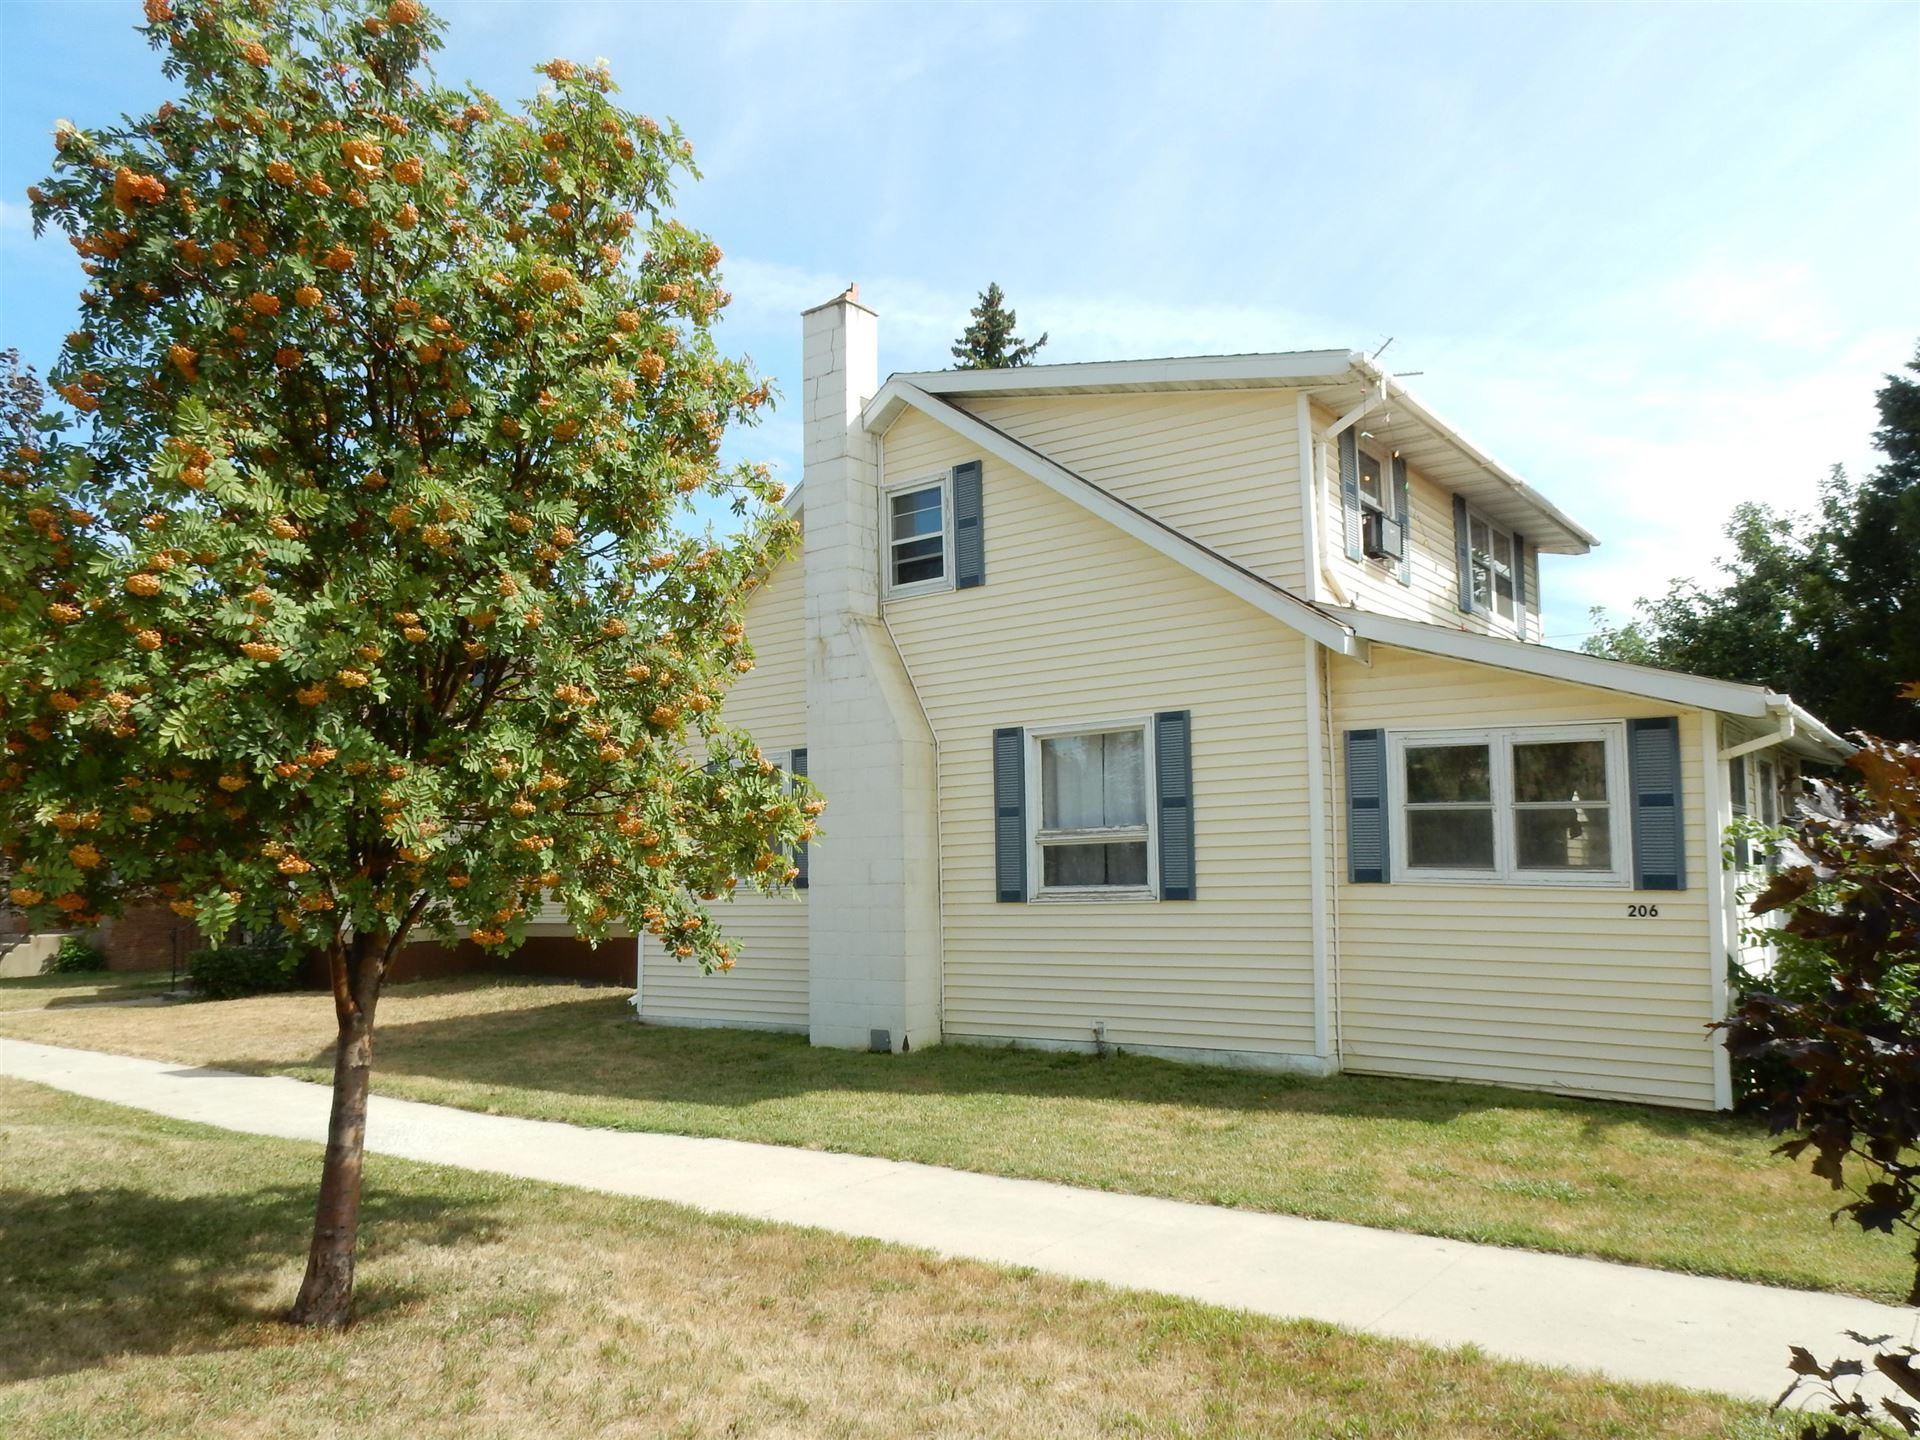 206 Collins Avenue, Mandan, ND 58554 - #: 408037